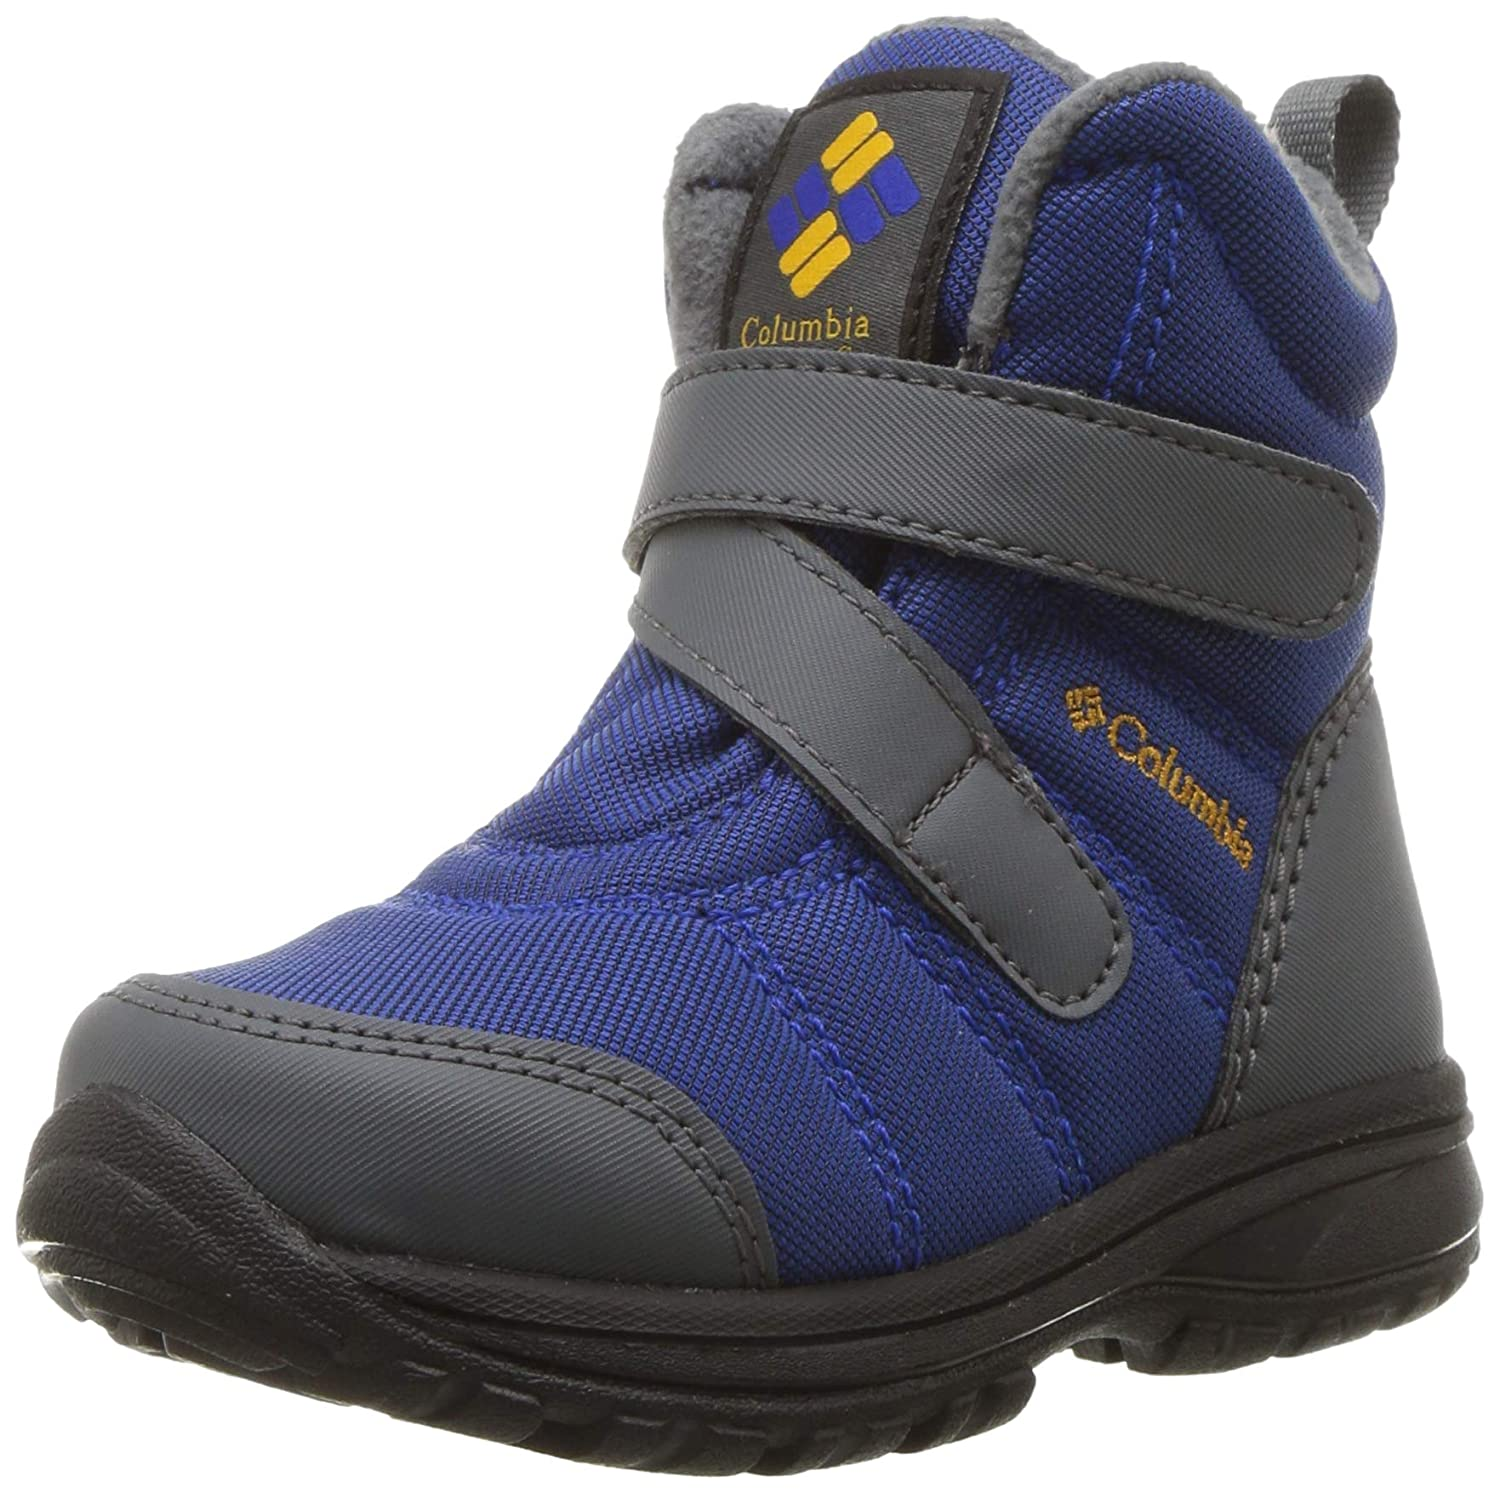 COLUMBIA Kinder Multisportschuhe, Wasserdicht, CHILDRENS FAIRBANKS